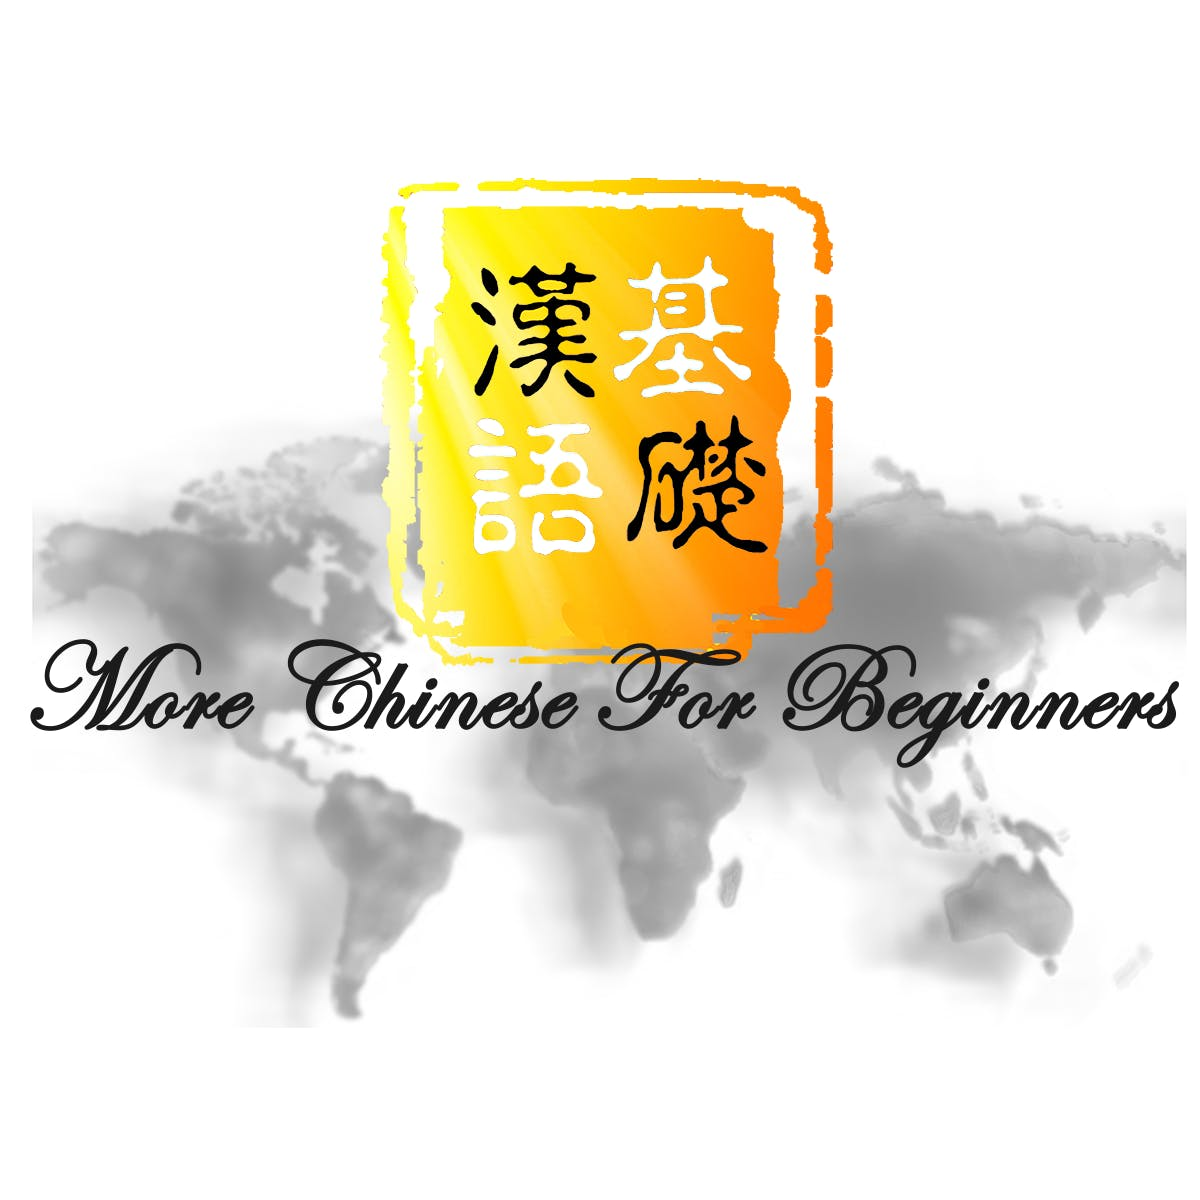 More Chinese for Beginners